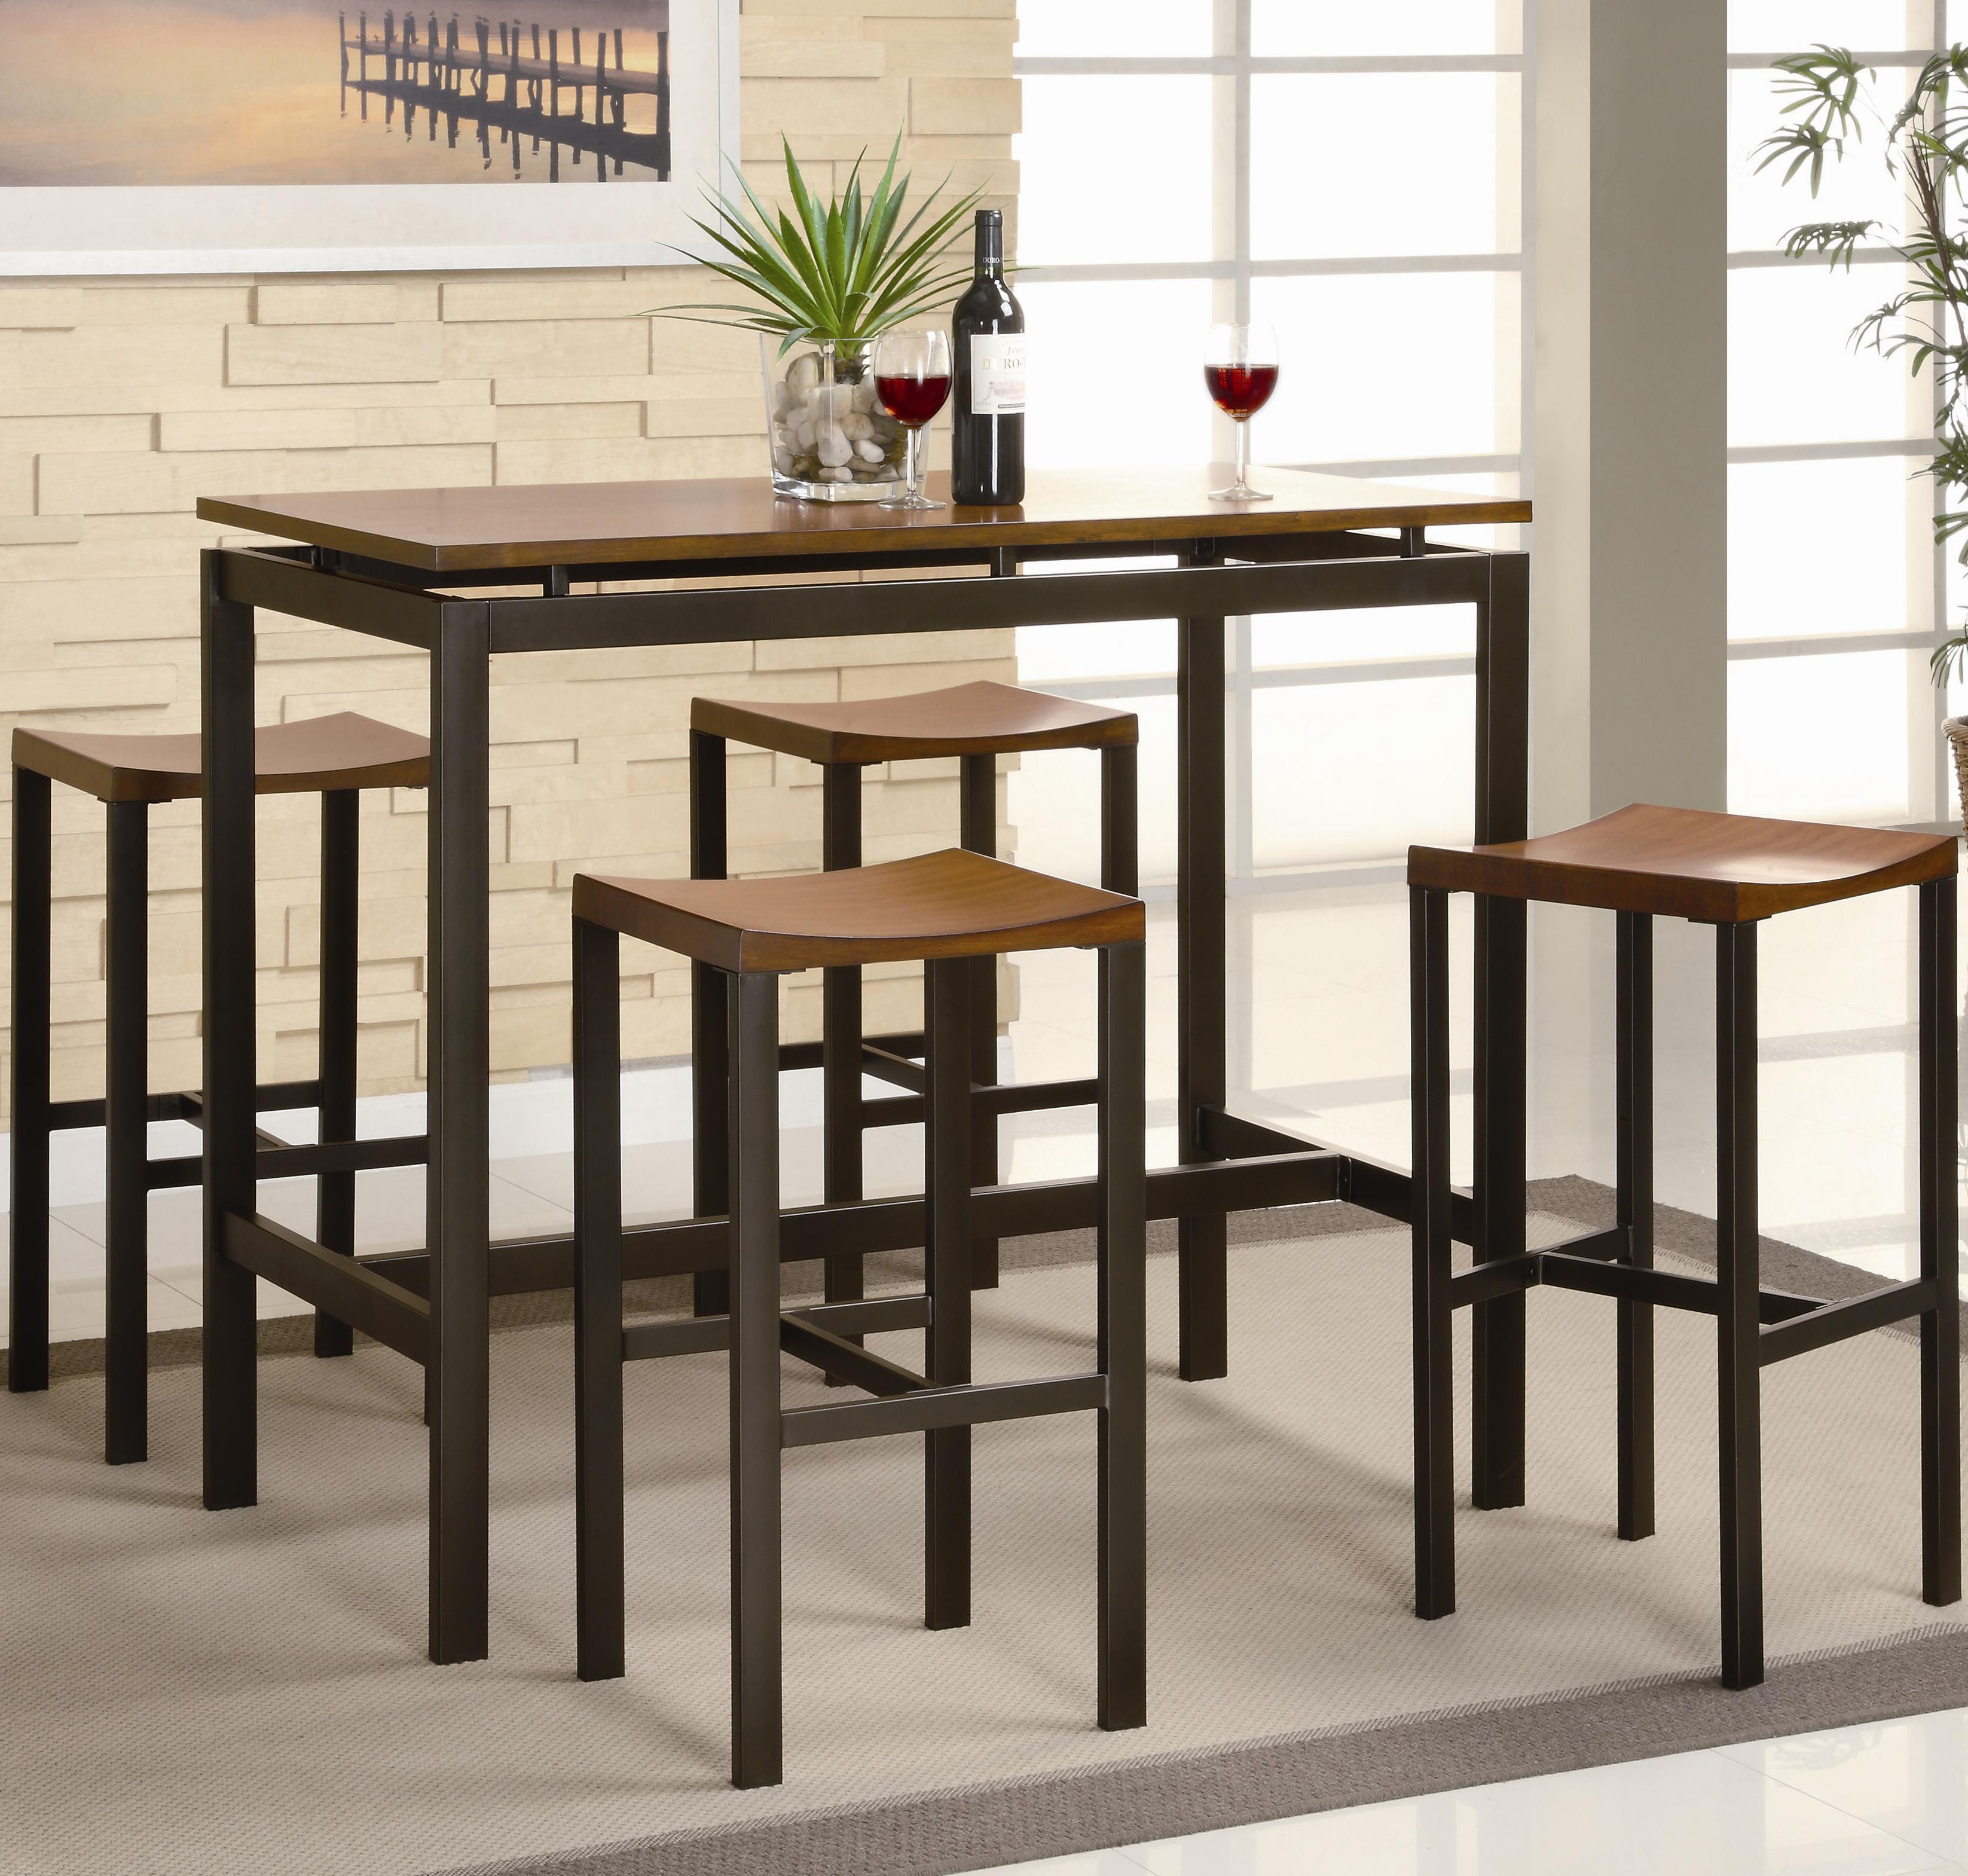 High Bench Table Coaster Atlus 150097 5 Piece Counter Height Dining Set